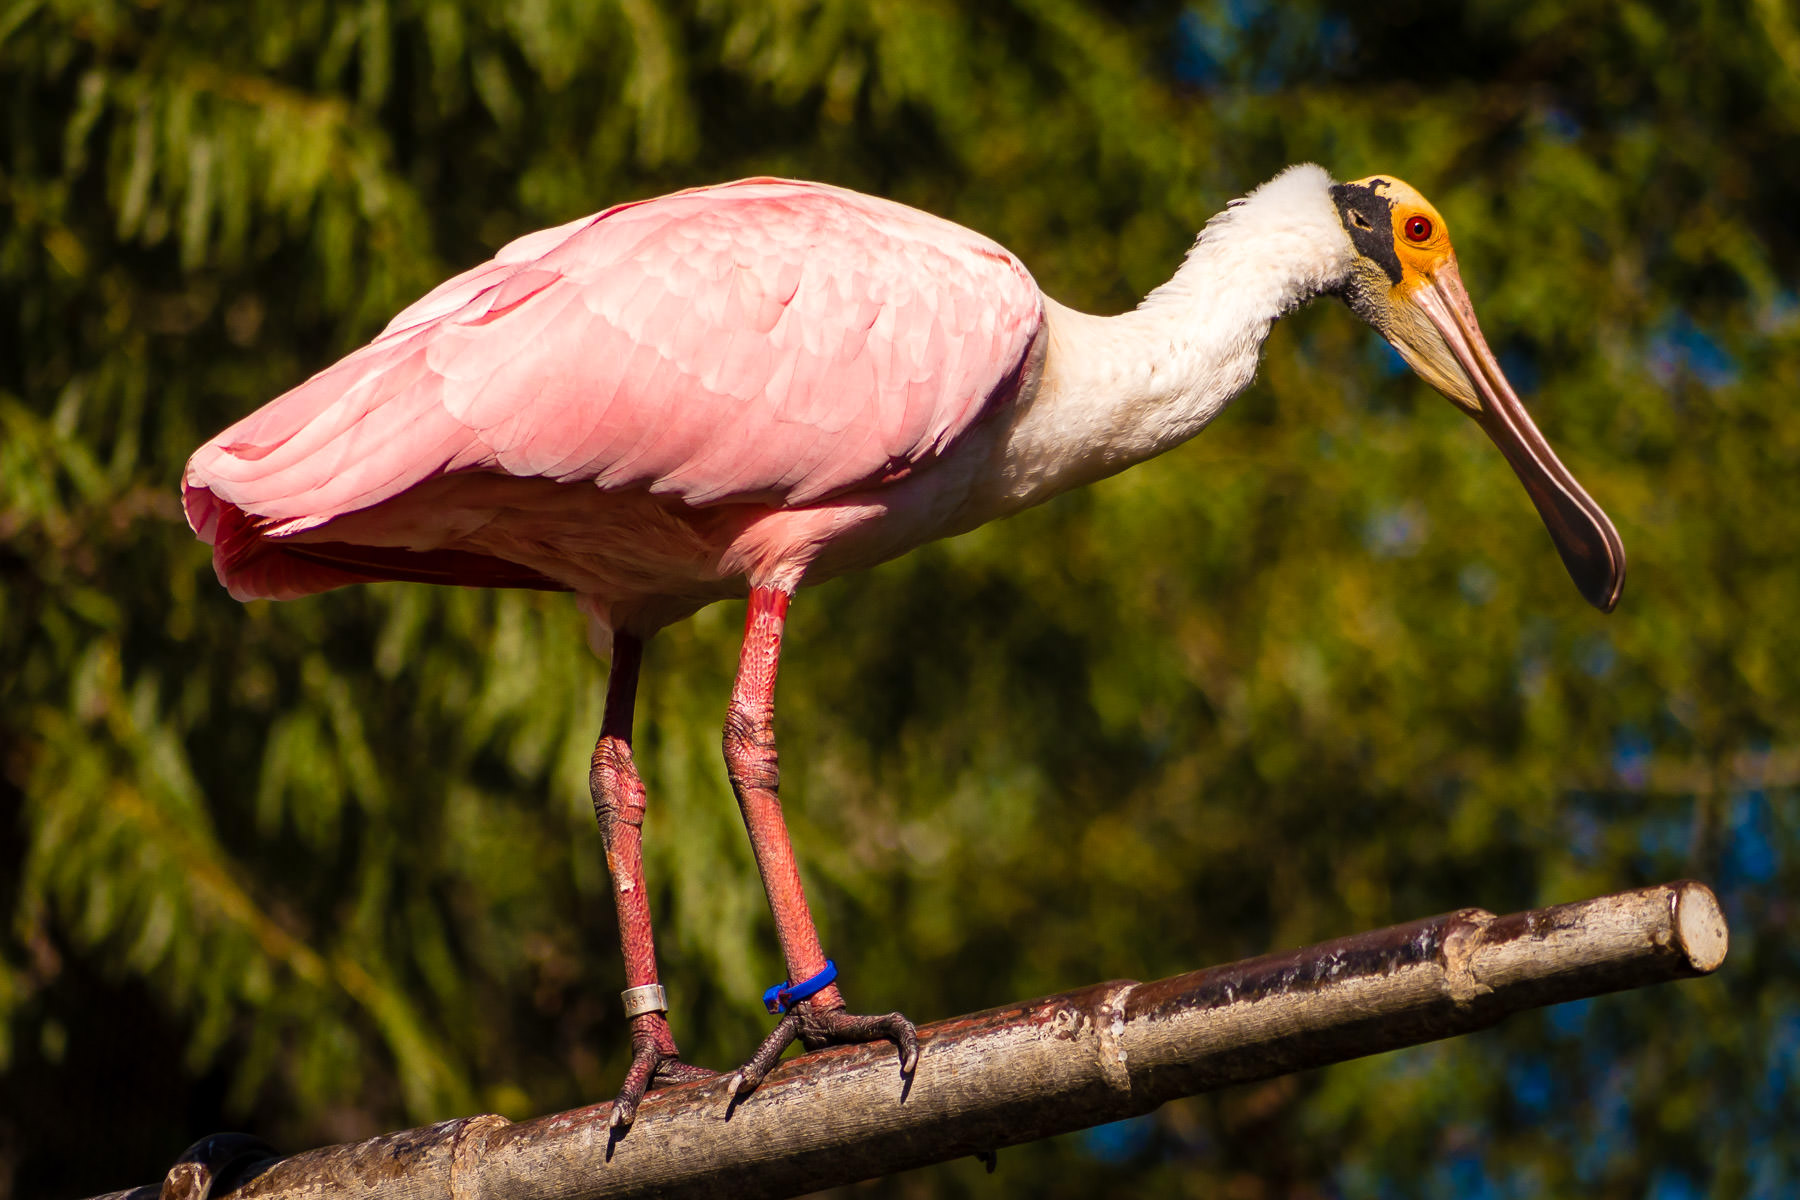 A Roseate Spoonbill perched on a pole in its habitat at the Fort Worth Zoo, Texas.